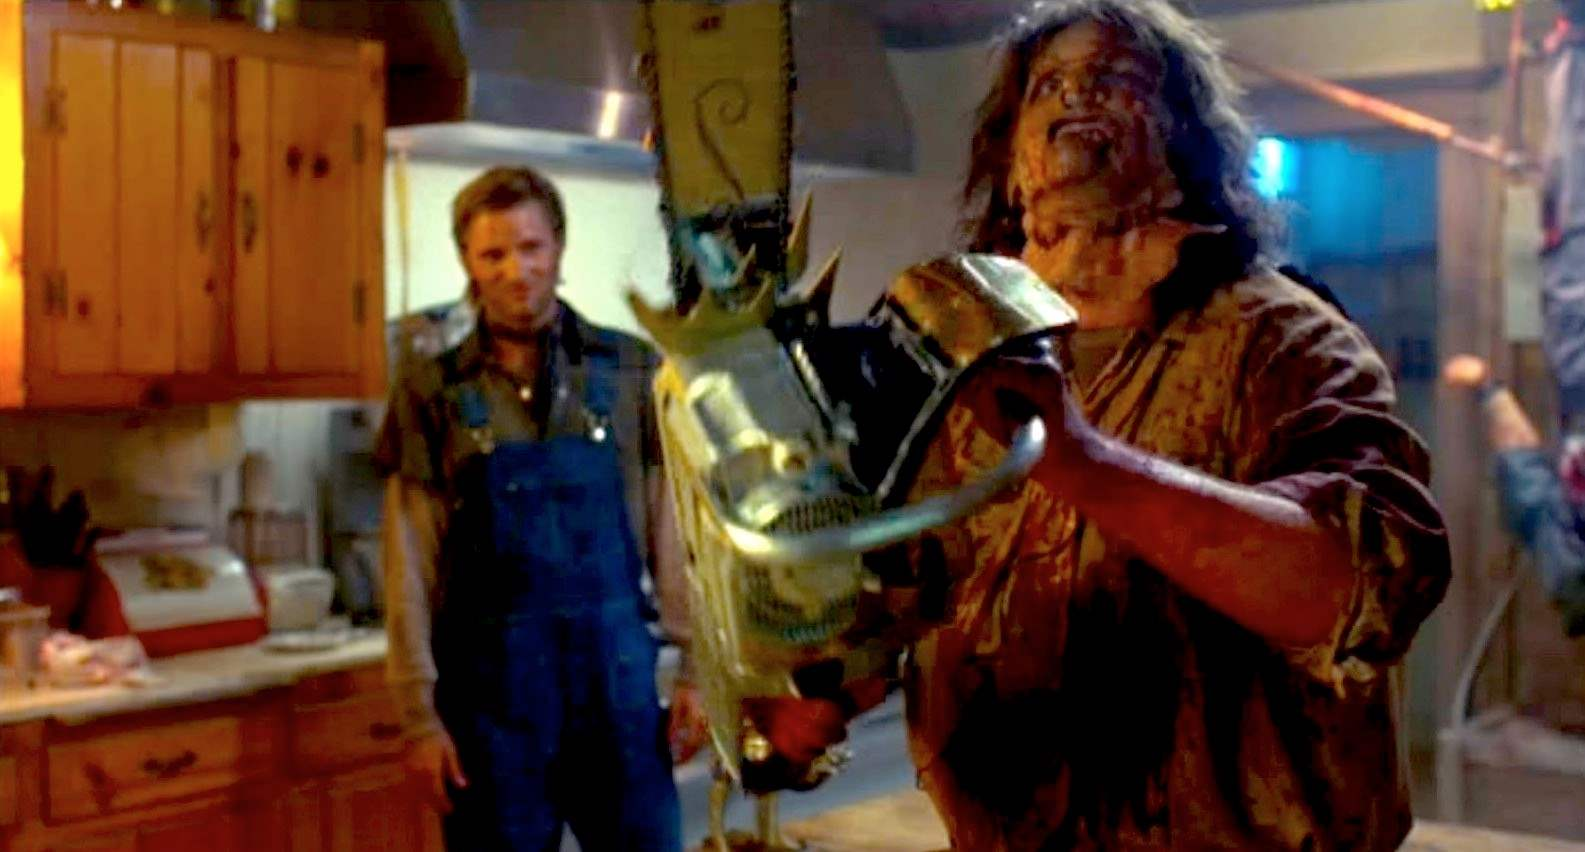 Texas Chainsaw Massacre III